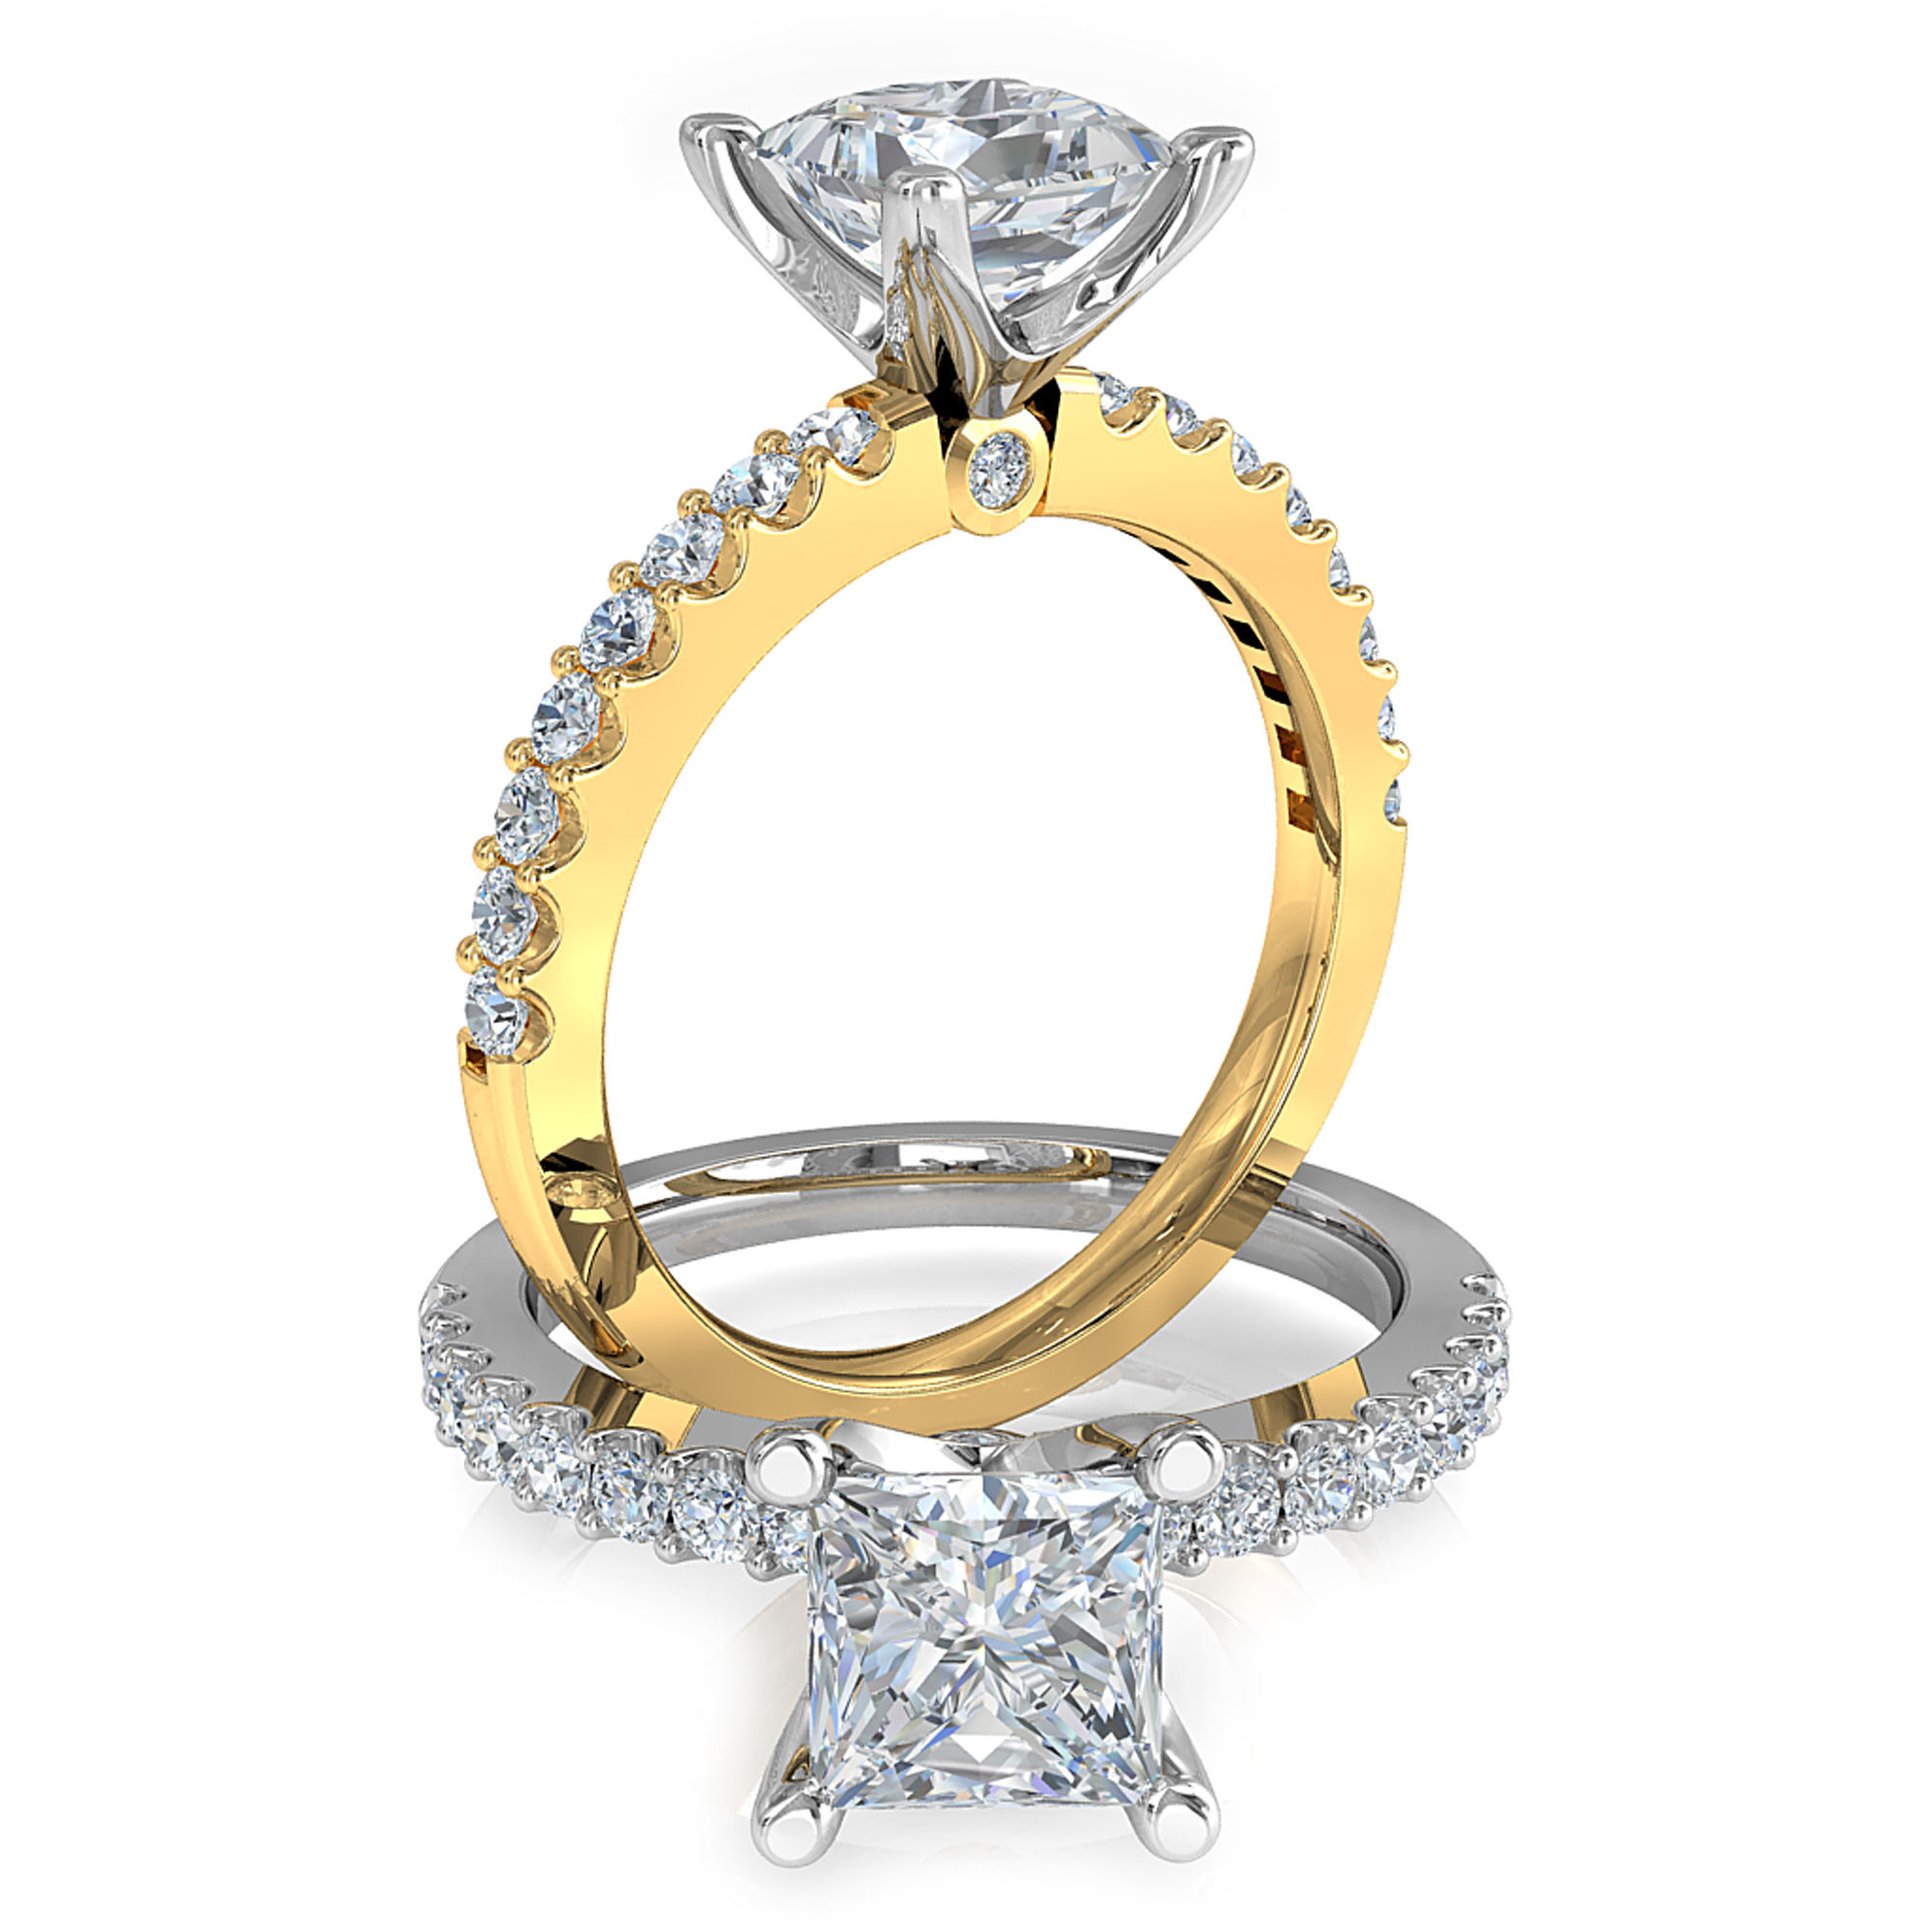 Princess Cut Solitaire Diamond Engagement Ring, 4 Claws Set on a Thin Cut Claw Band with a Hidden Diamond Undersetting.